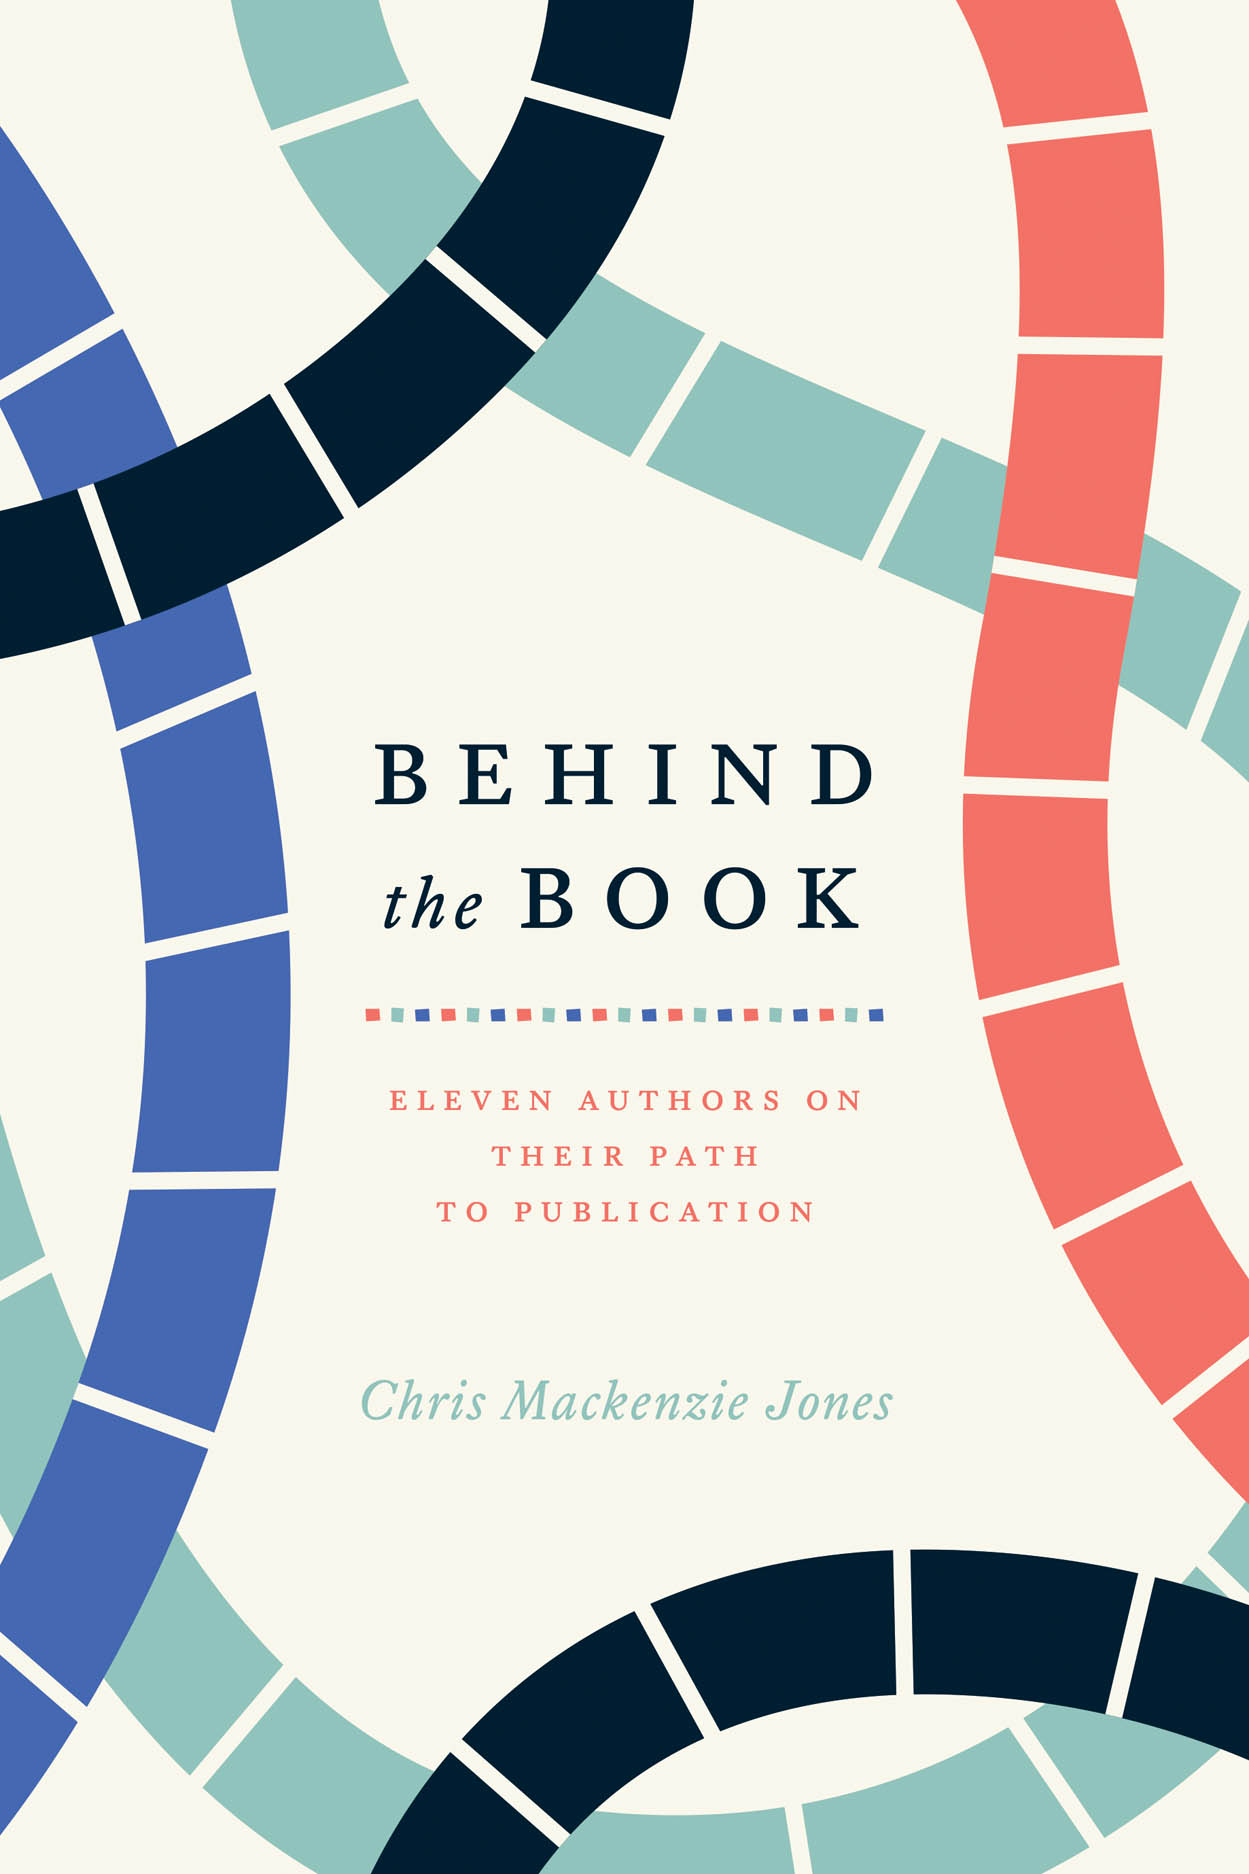 Behind the Book: Eleven Authors on Their Path to Publication